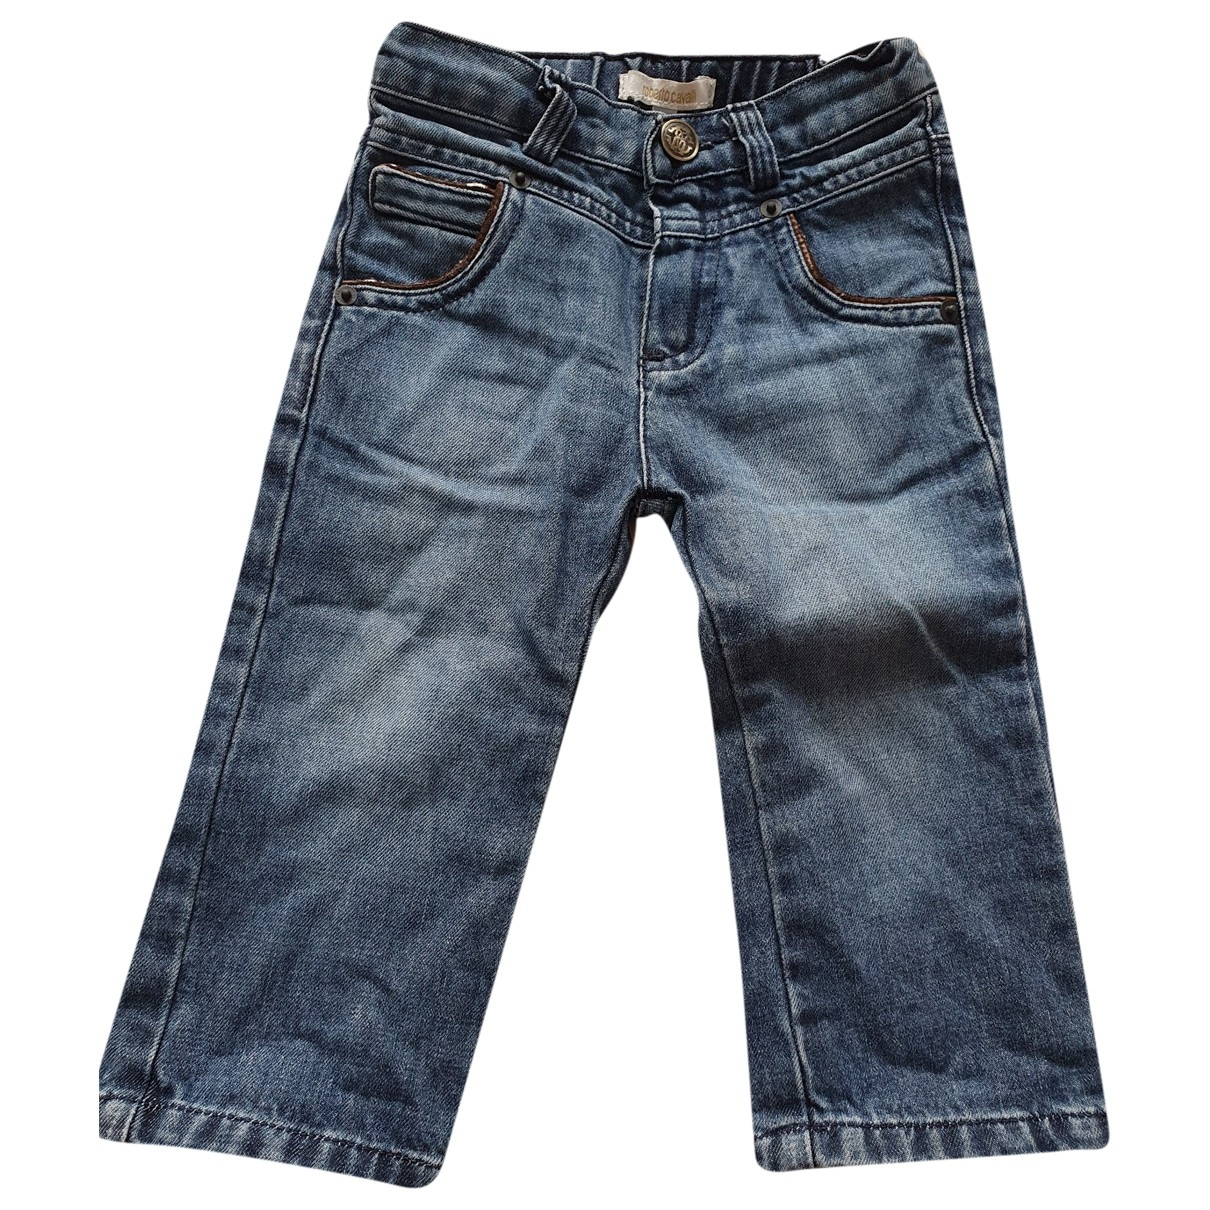 Roberto Cavalli \N Blue Denim - Jeans Trousers for Kids 12 months - up to 74cm FR